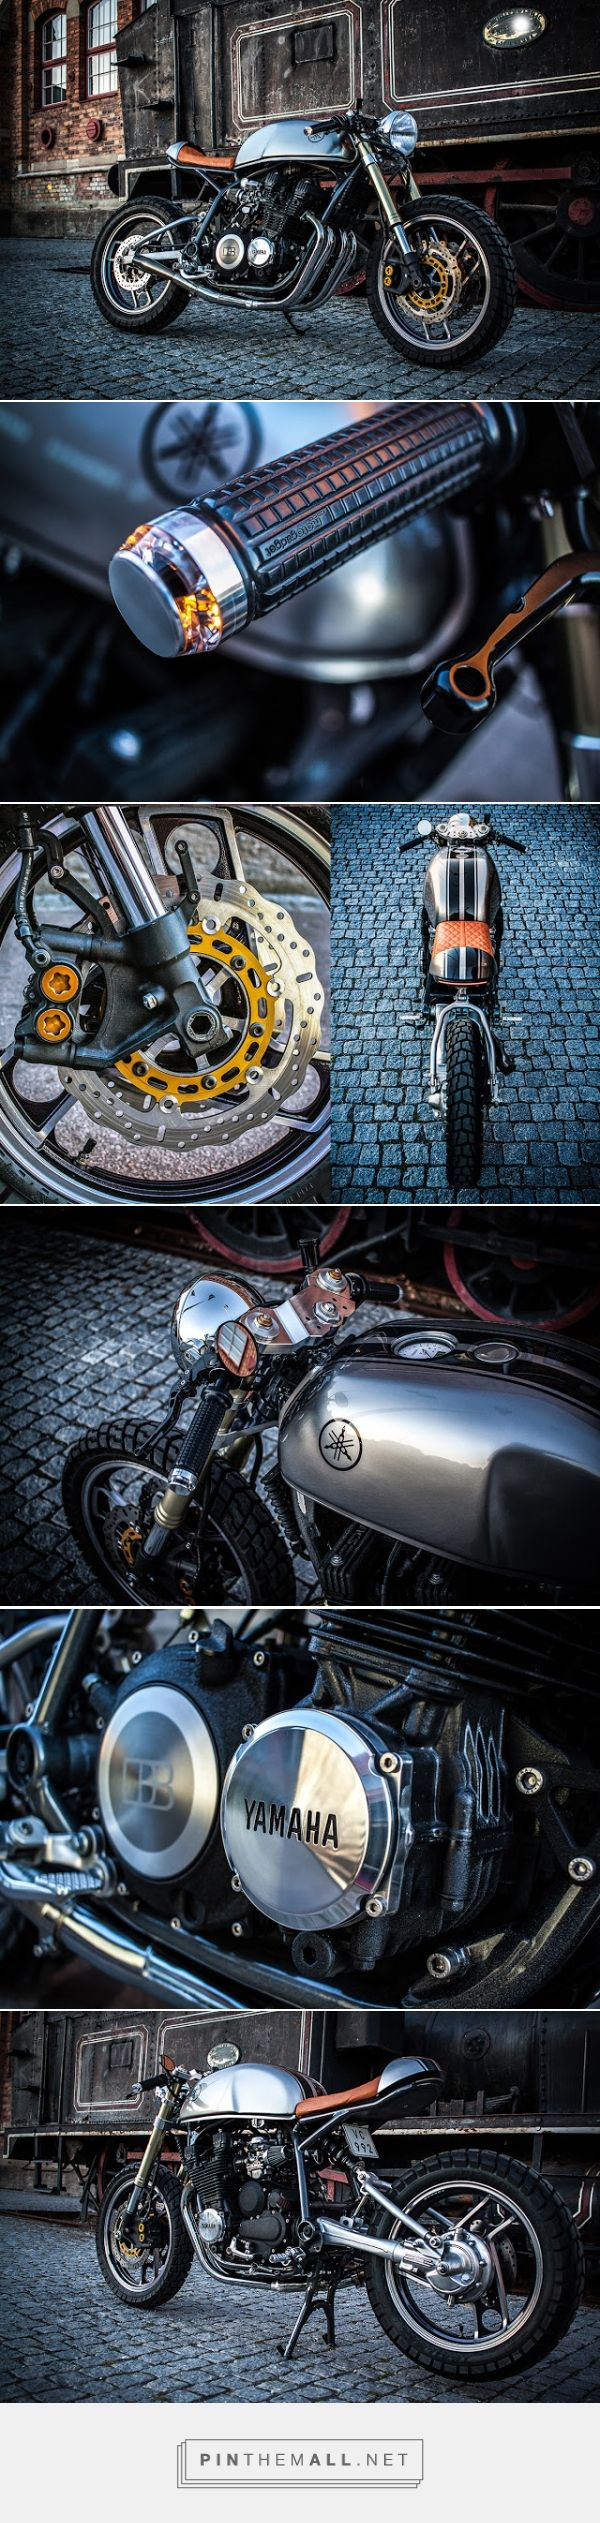 The Keeper - Yamaha XJ900 Cafe Racer           ~            Return of the Cafe Racers   http://www.returnofthecaferacers.com/2016/10/yamaha-xj900-cafe-racer.html - created via https://pinthemall.net